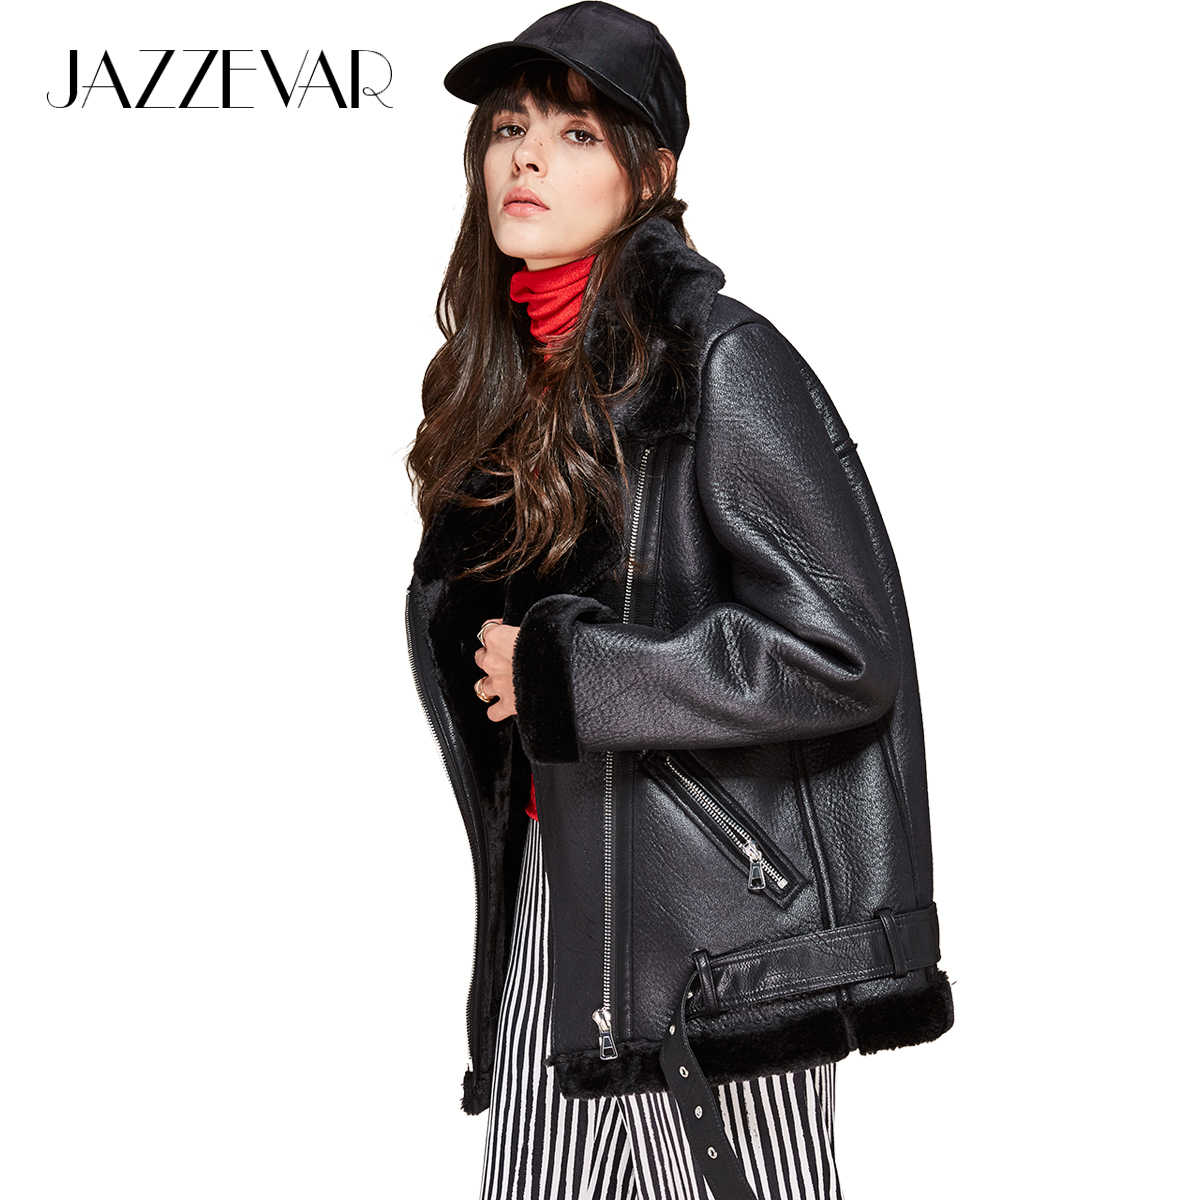 JAZZEVAR 2019 New autumn winter high fashion street women PU leather jacket casual warm zipper jacket imitation fur outwear